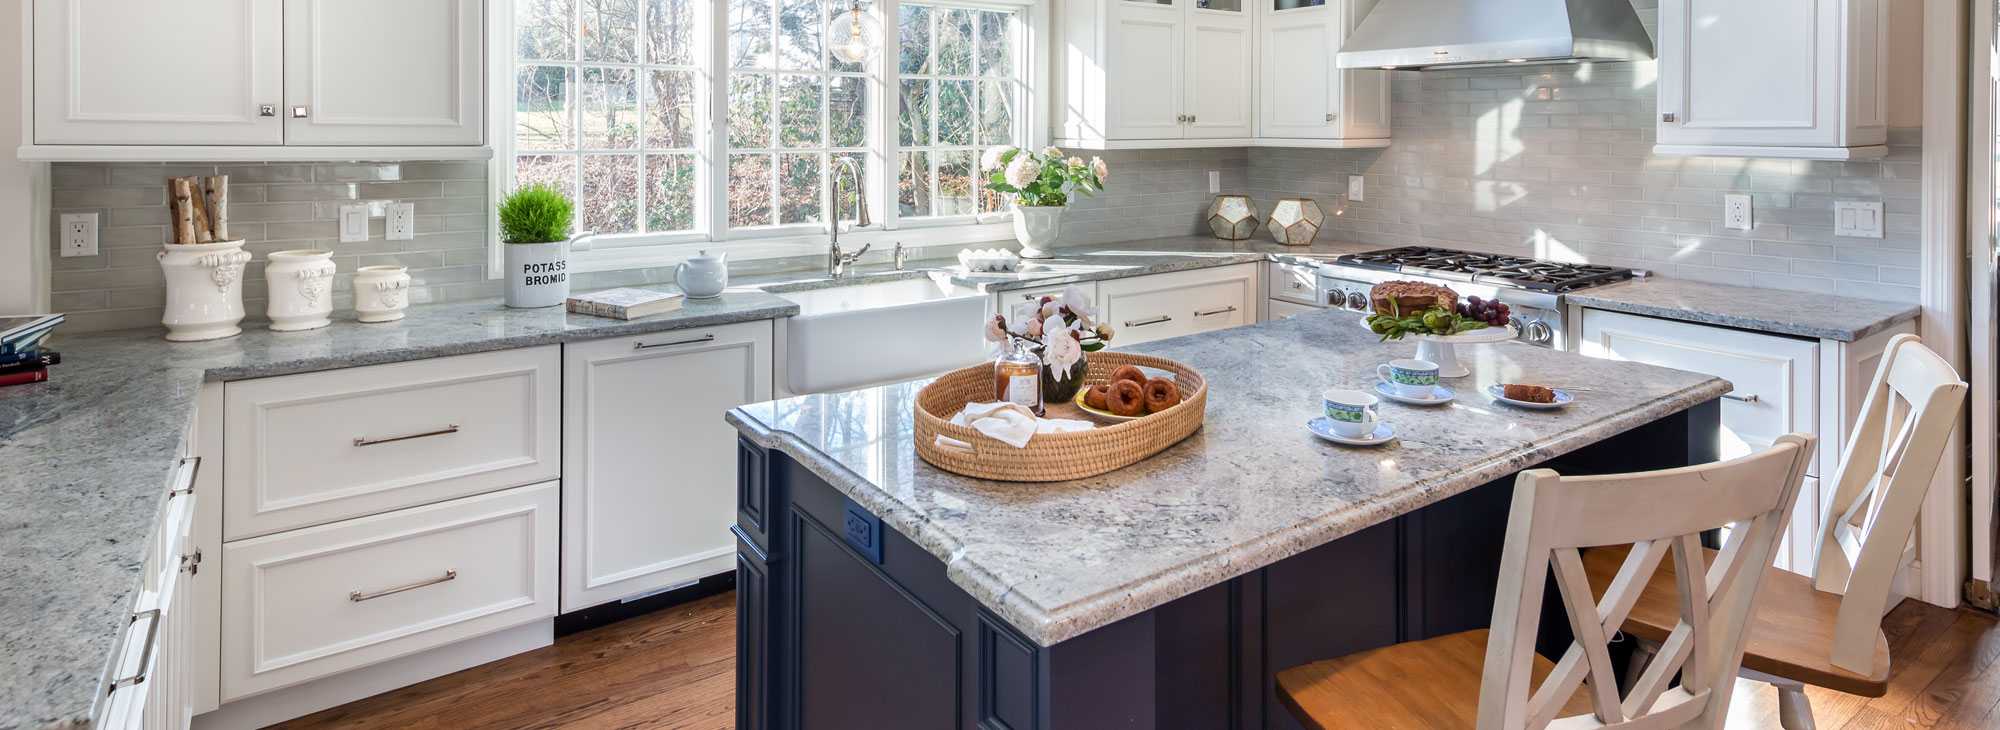 Lasting Value Beyond Comparison - Greenfield Cabinetry